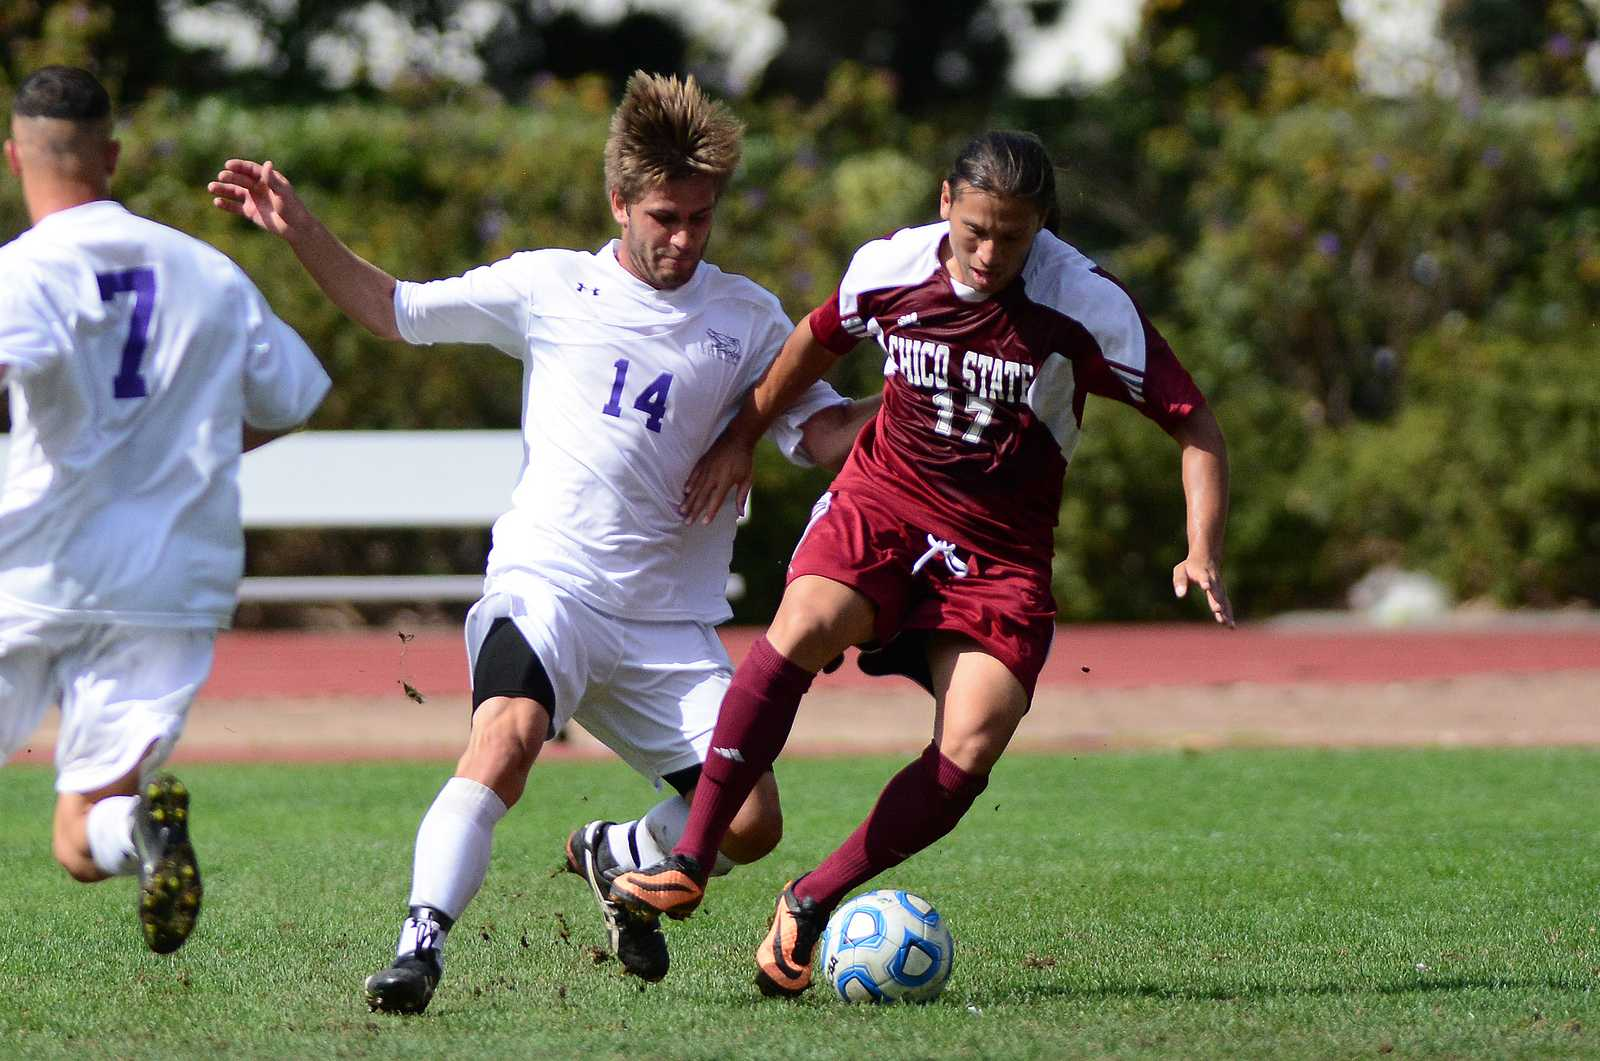 Nathan Fernandez (14) pursues the ball alongside Octavio Guzman (17) during a game against Chico State at Cox Stadium, Oct. 6, 2013. The Gators lost the game 0-1. Photo by Philip Houston / Xpress